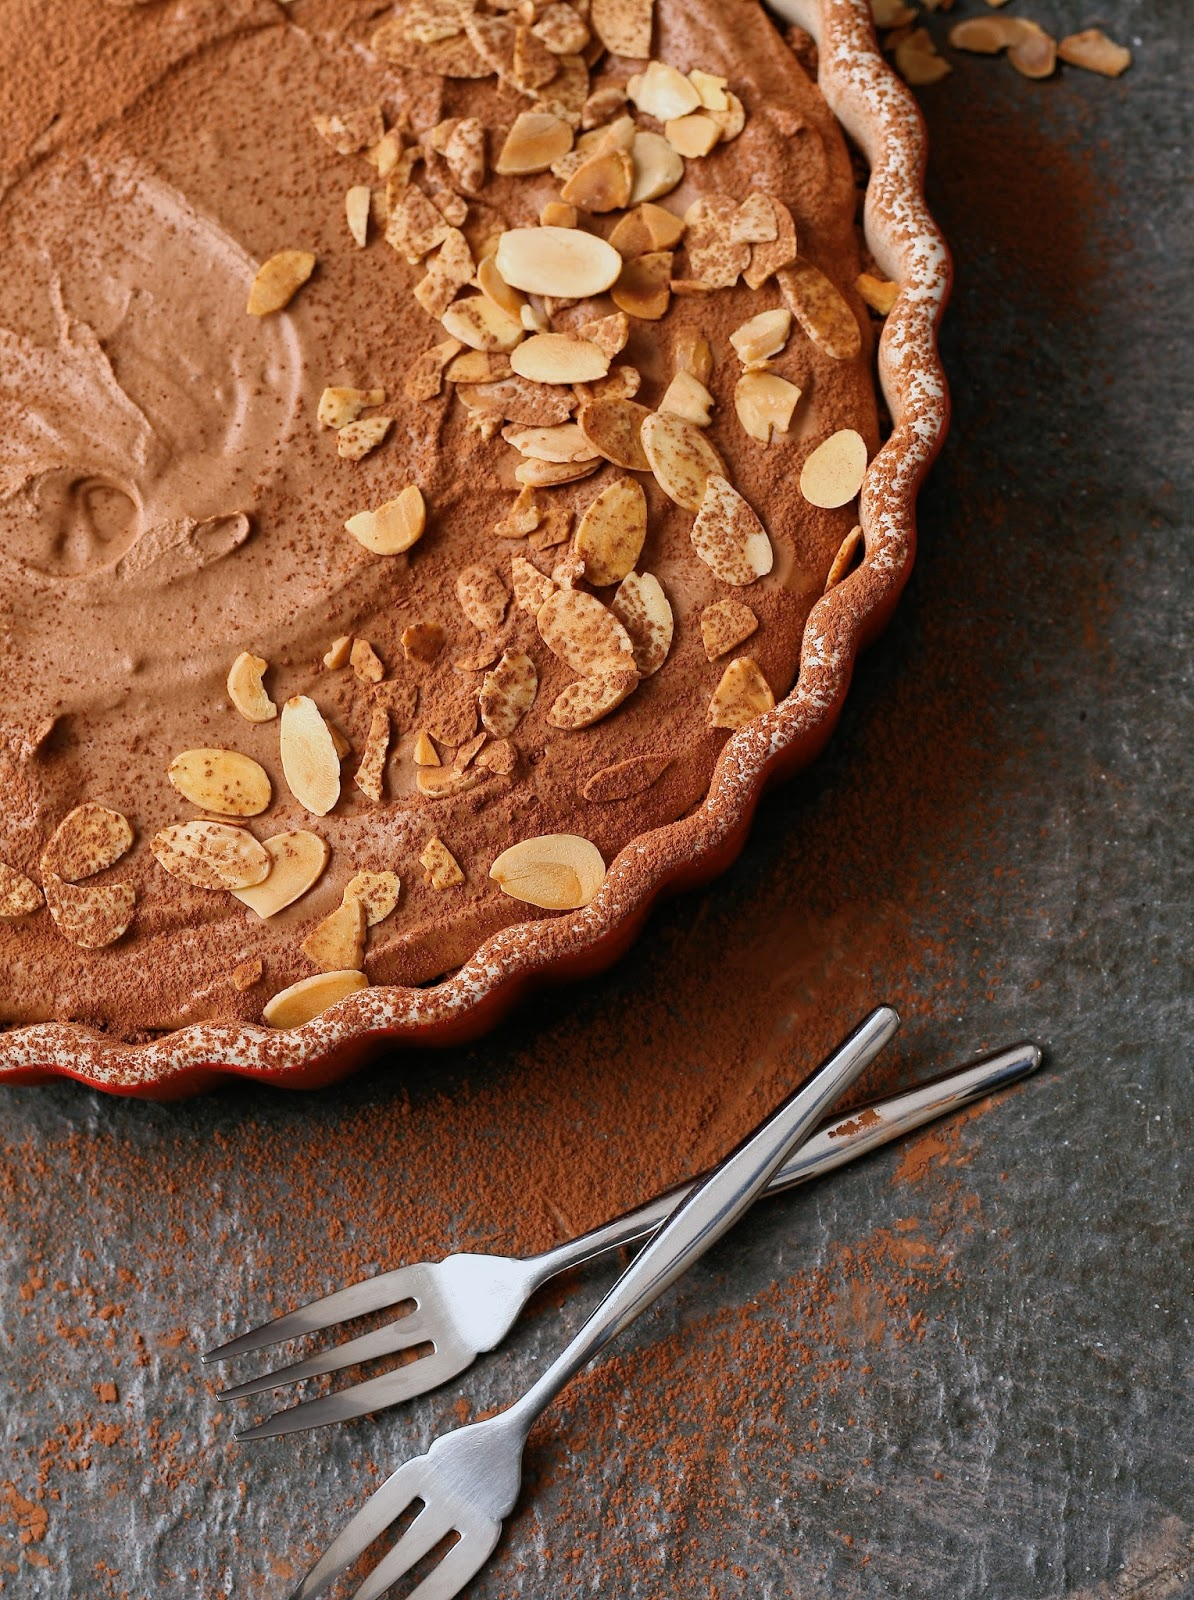 Low carb low sugar chocolate tart